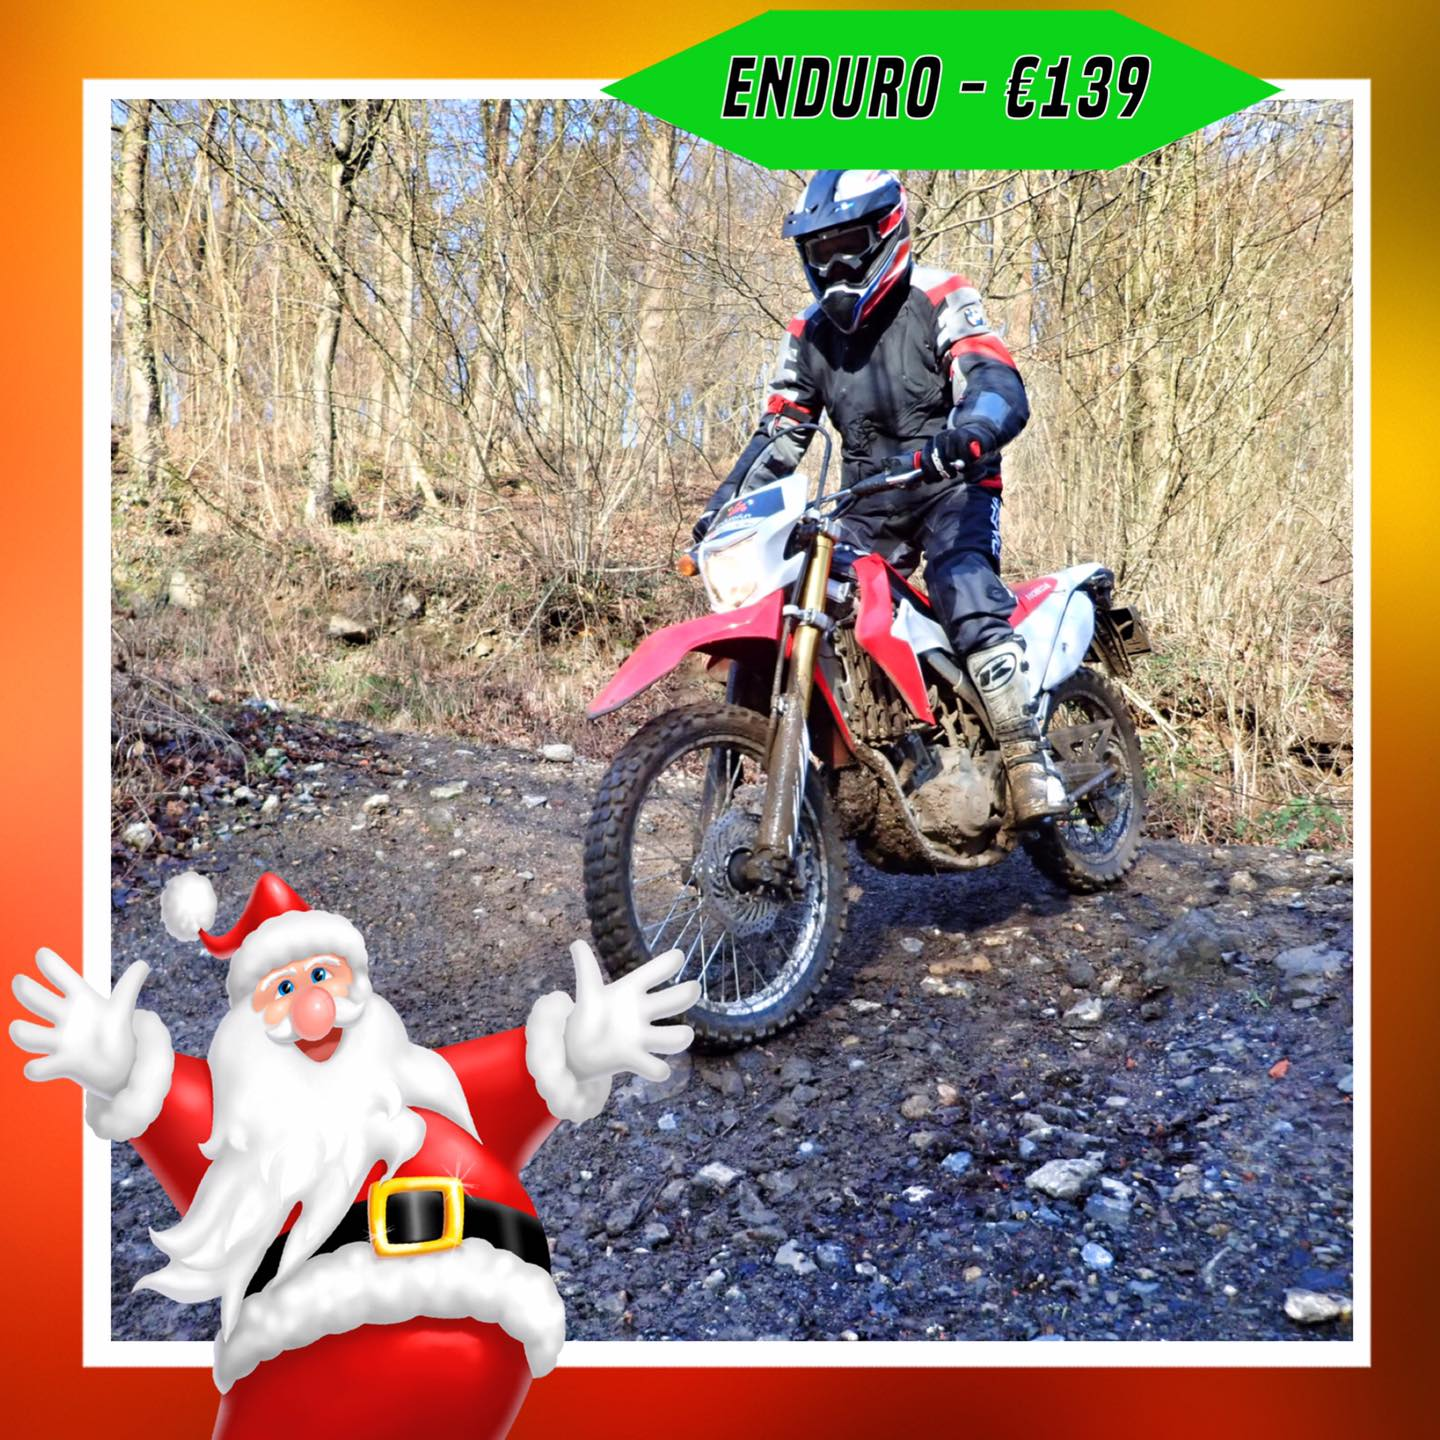 Kerst-initiaties Bilstain Endurofun 12